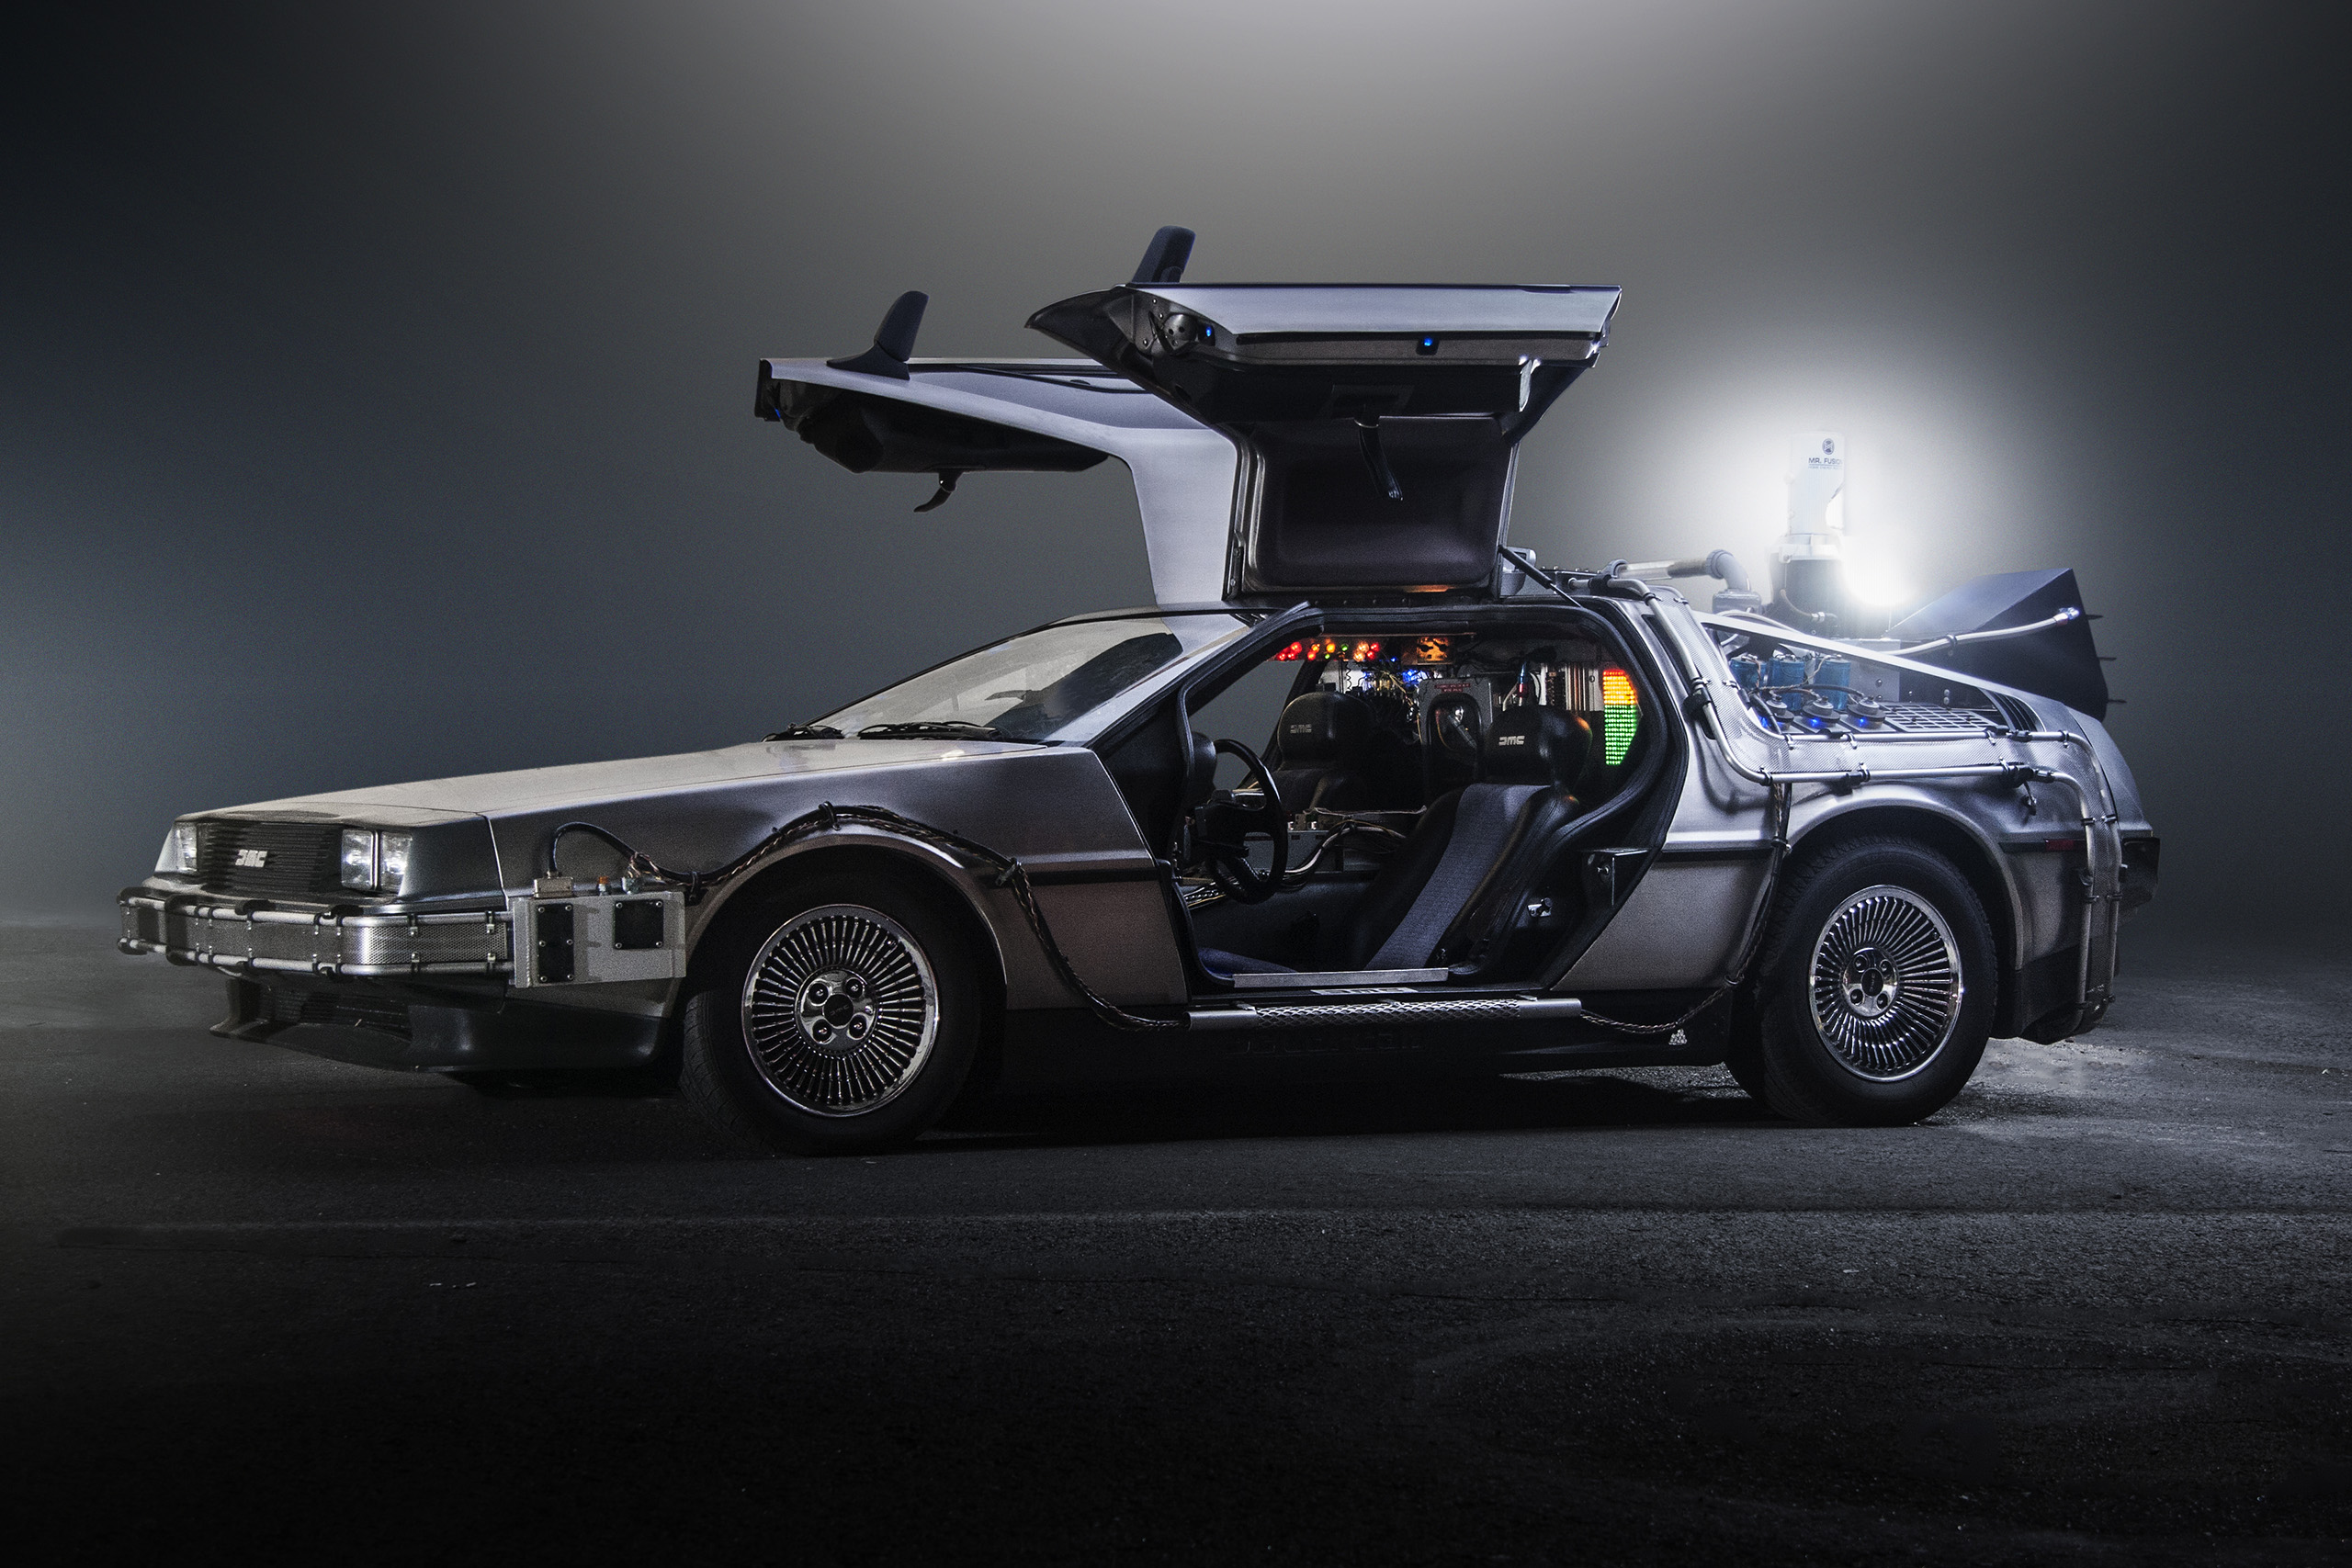 The Back to the future model car is fixed